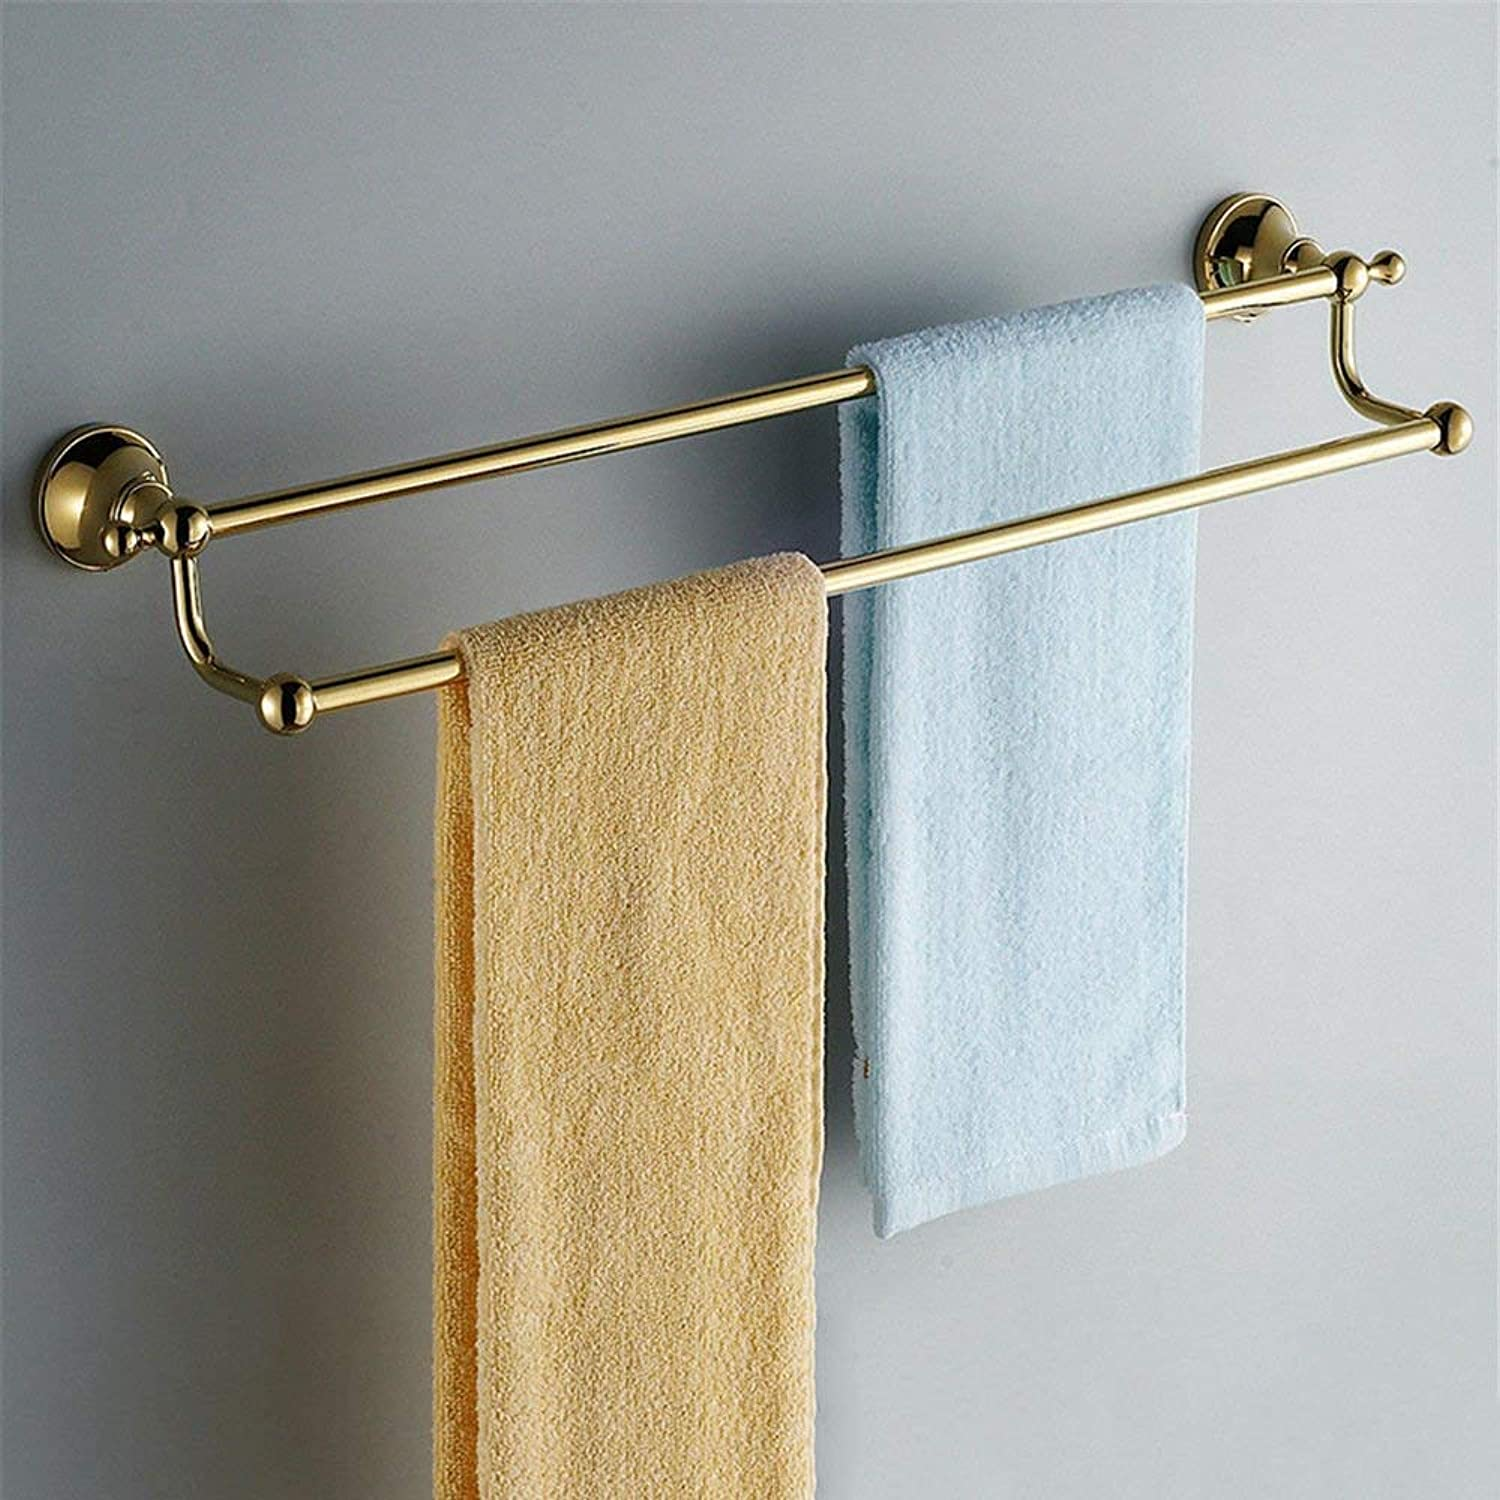 Towel Rack The Copper gold Bath Hardware Hanging in a Towel Rack Towel Rack, Brush Cup Bathroom Towel Shelf (color   Towel Rack2)